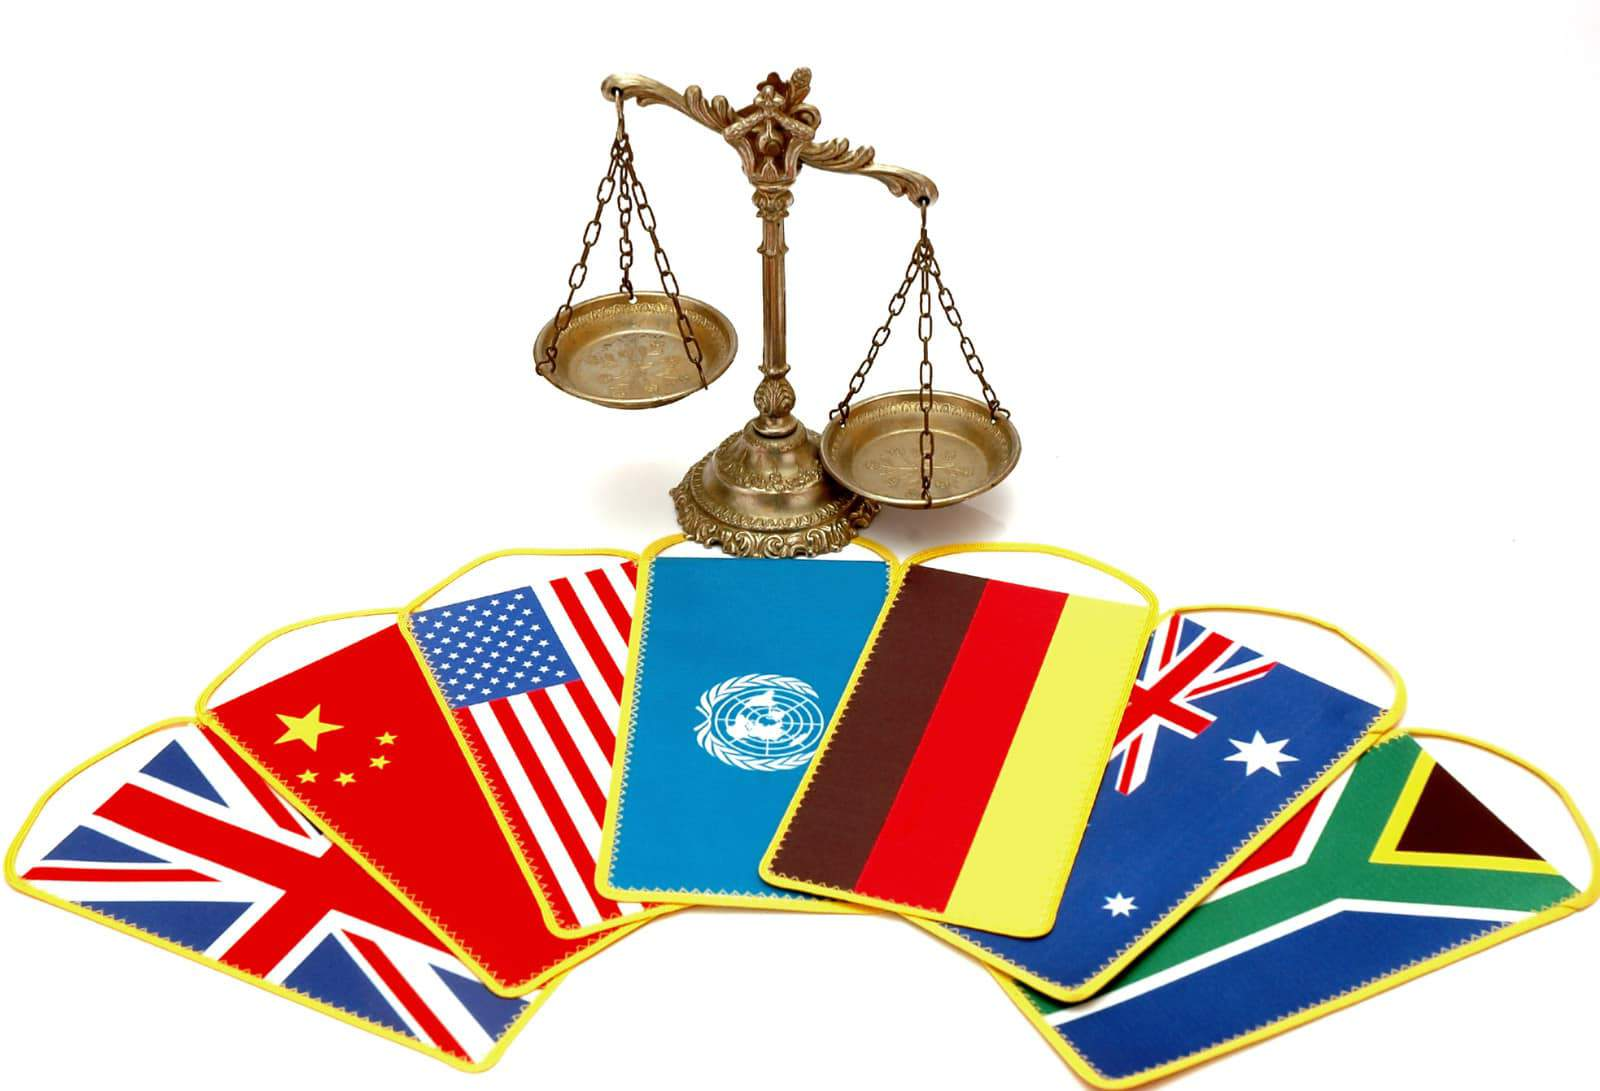 Rich-Vaughn-Blog-International-Law